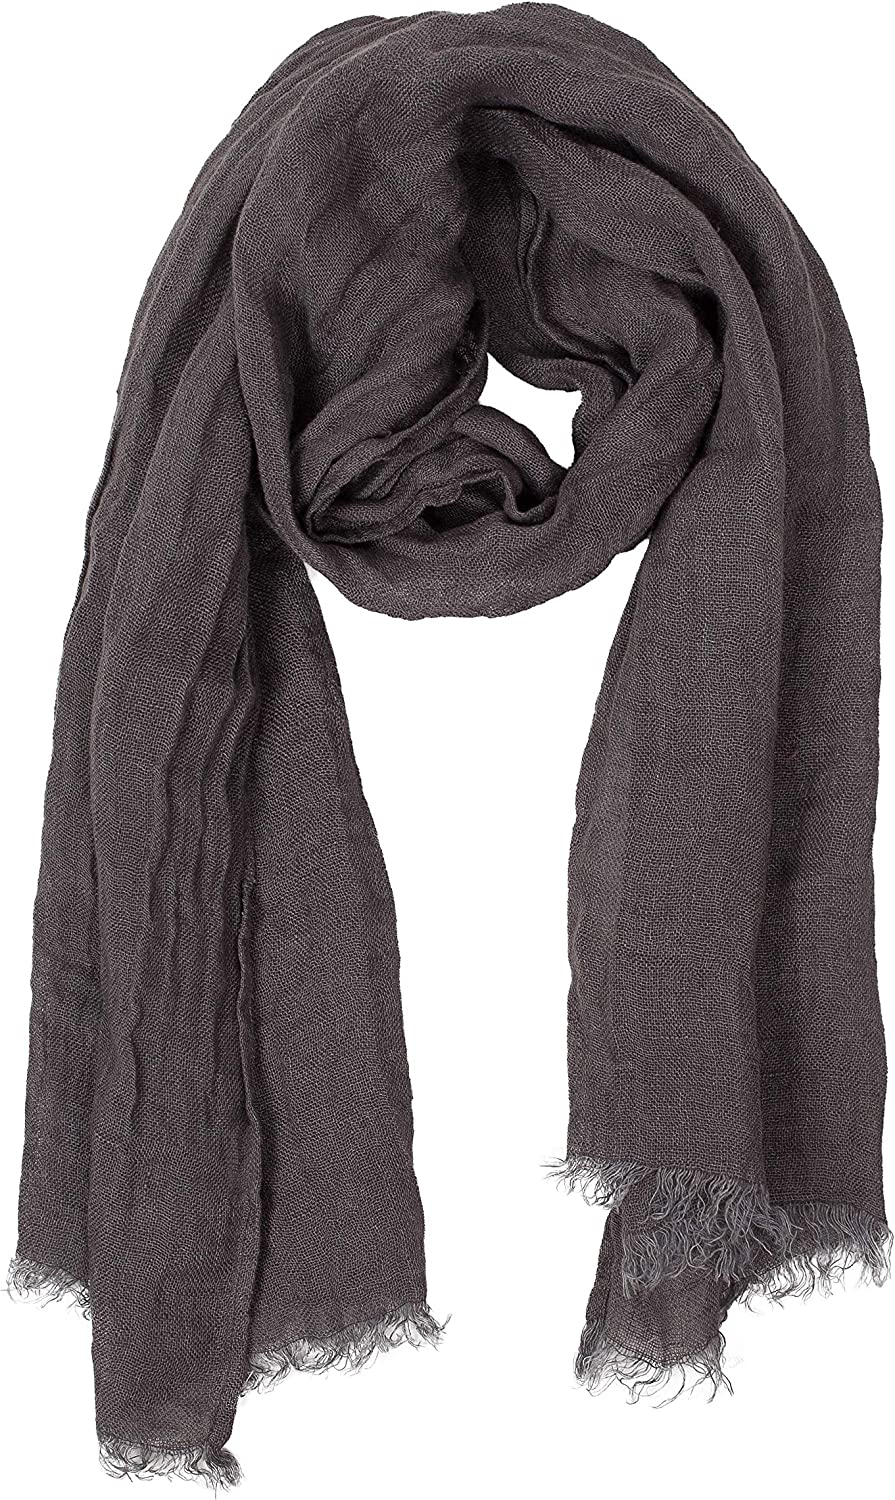 Lusie's Linen Scarf - 100% Linen - Imported from Europe